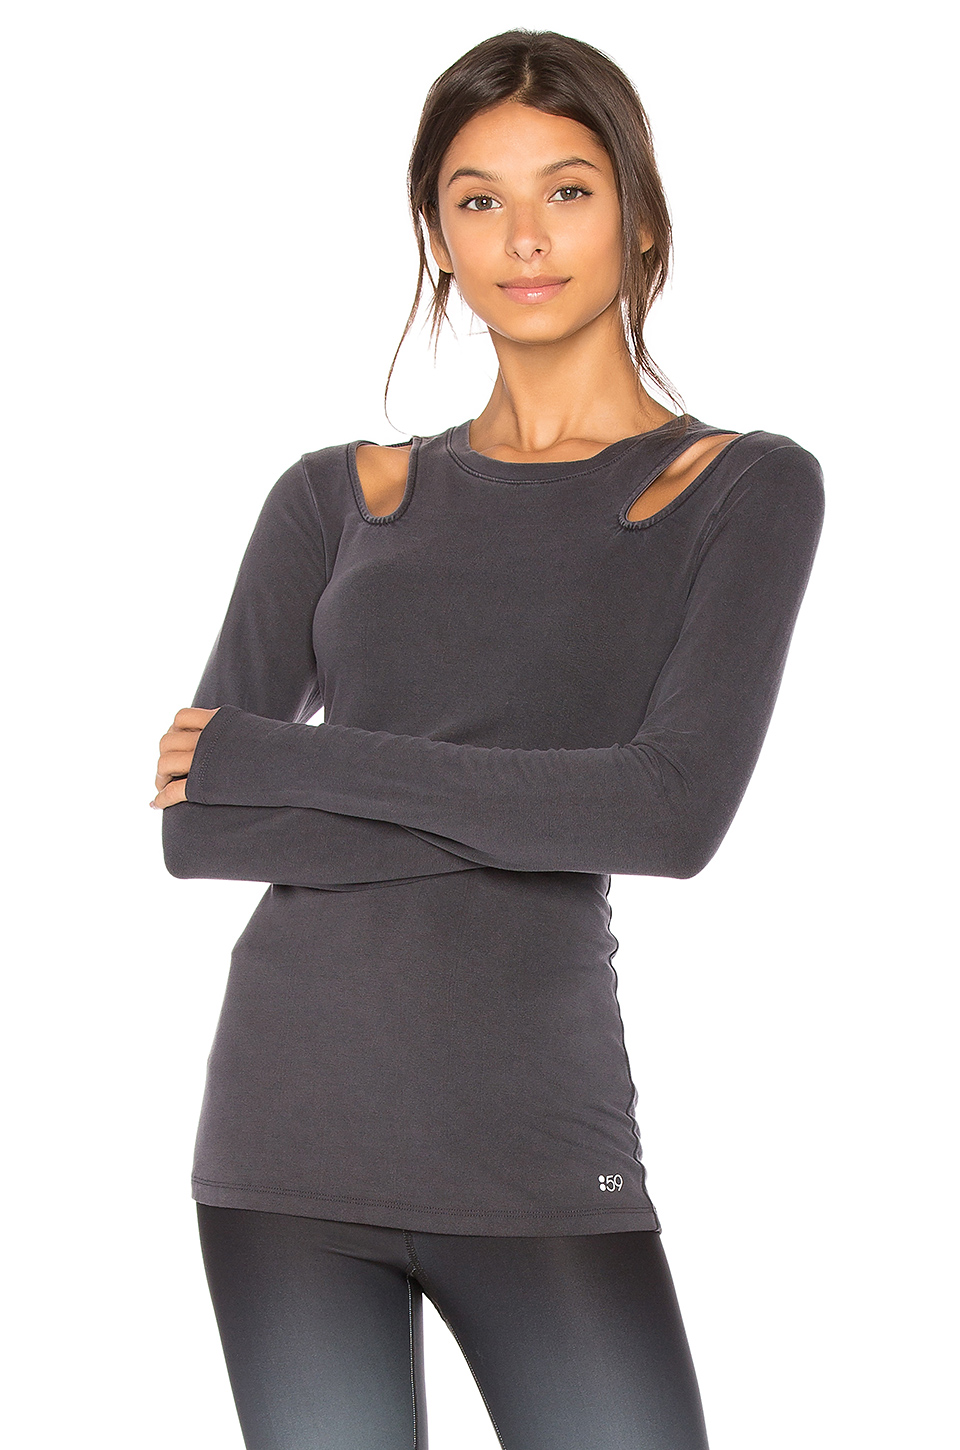 Splits59 Alexis Terry Top in Faded Black